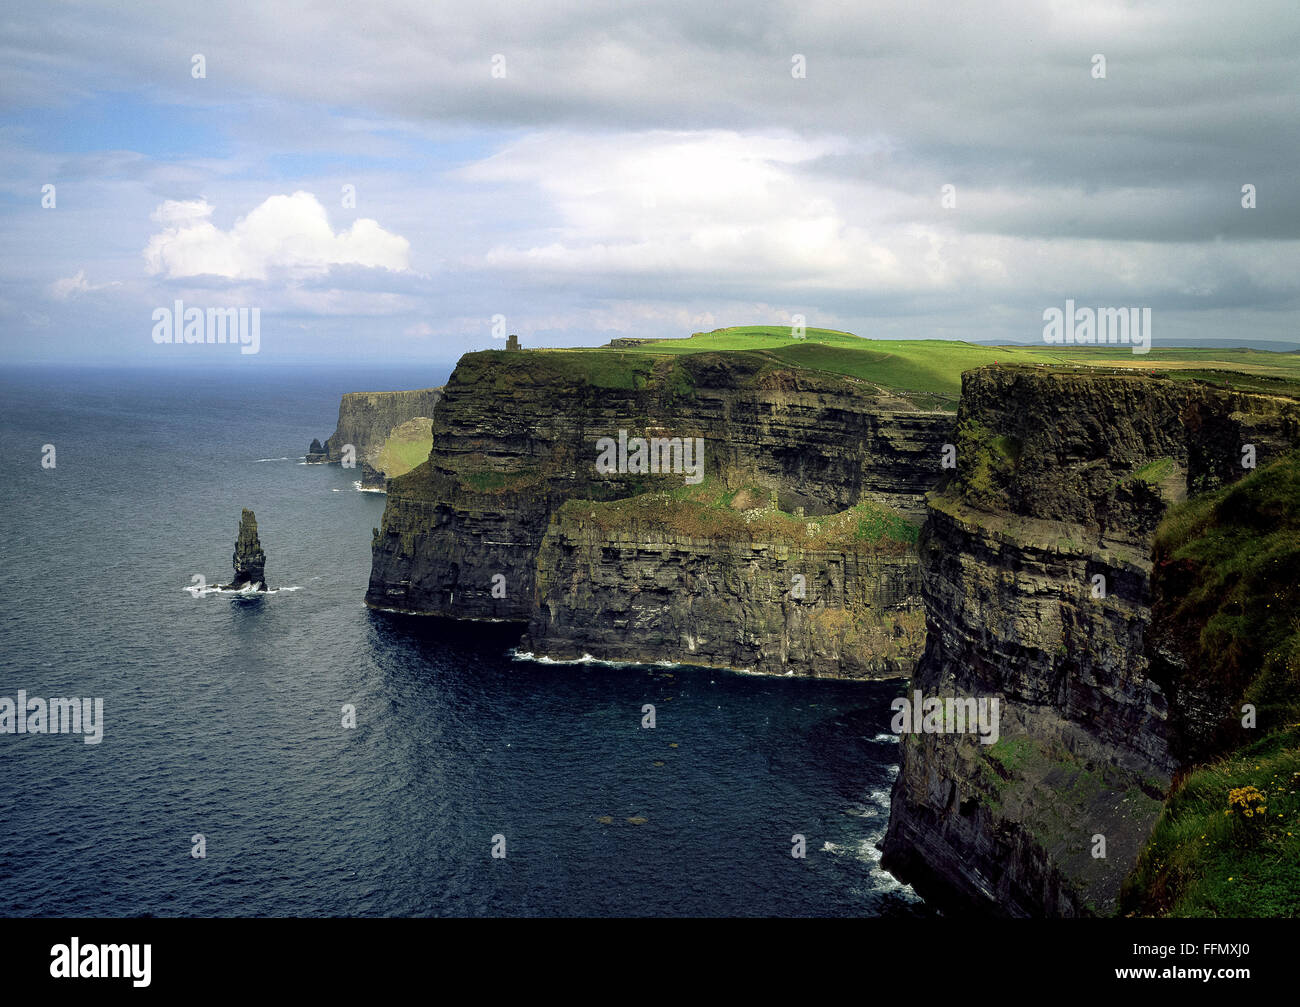 Cliffs of Moher Clare Ireland - Stock Image